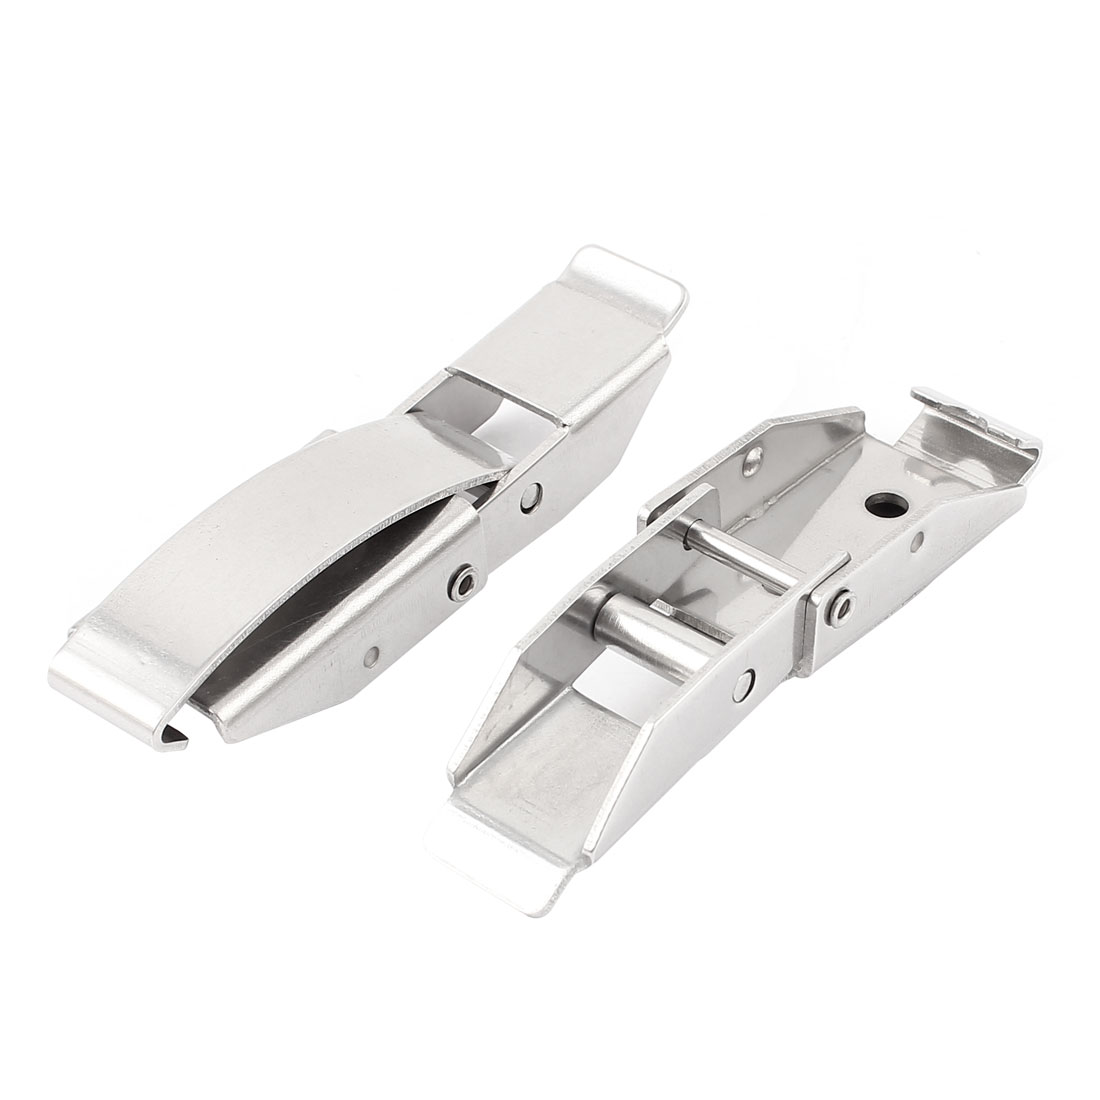 Suitcase Case Box Locking Spring Loaded Toggle Latch Catch Hasp Silver Tone 2pcs